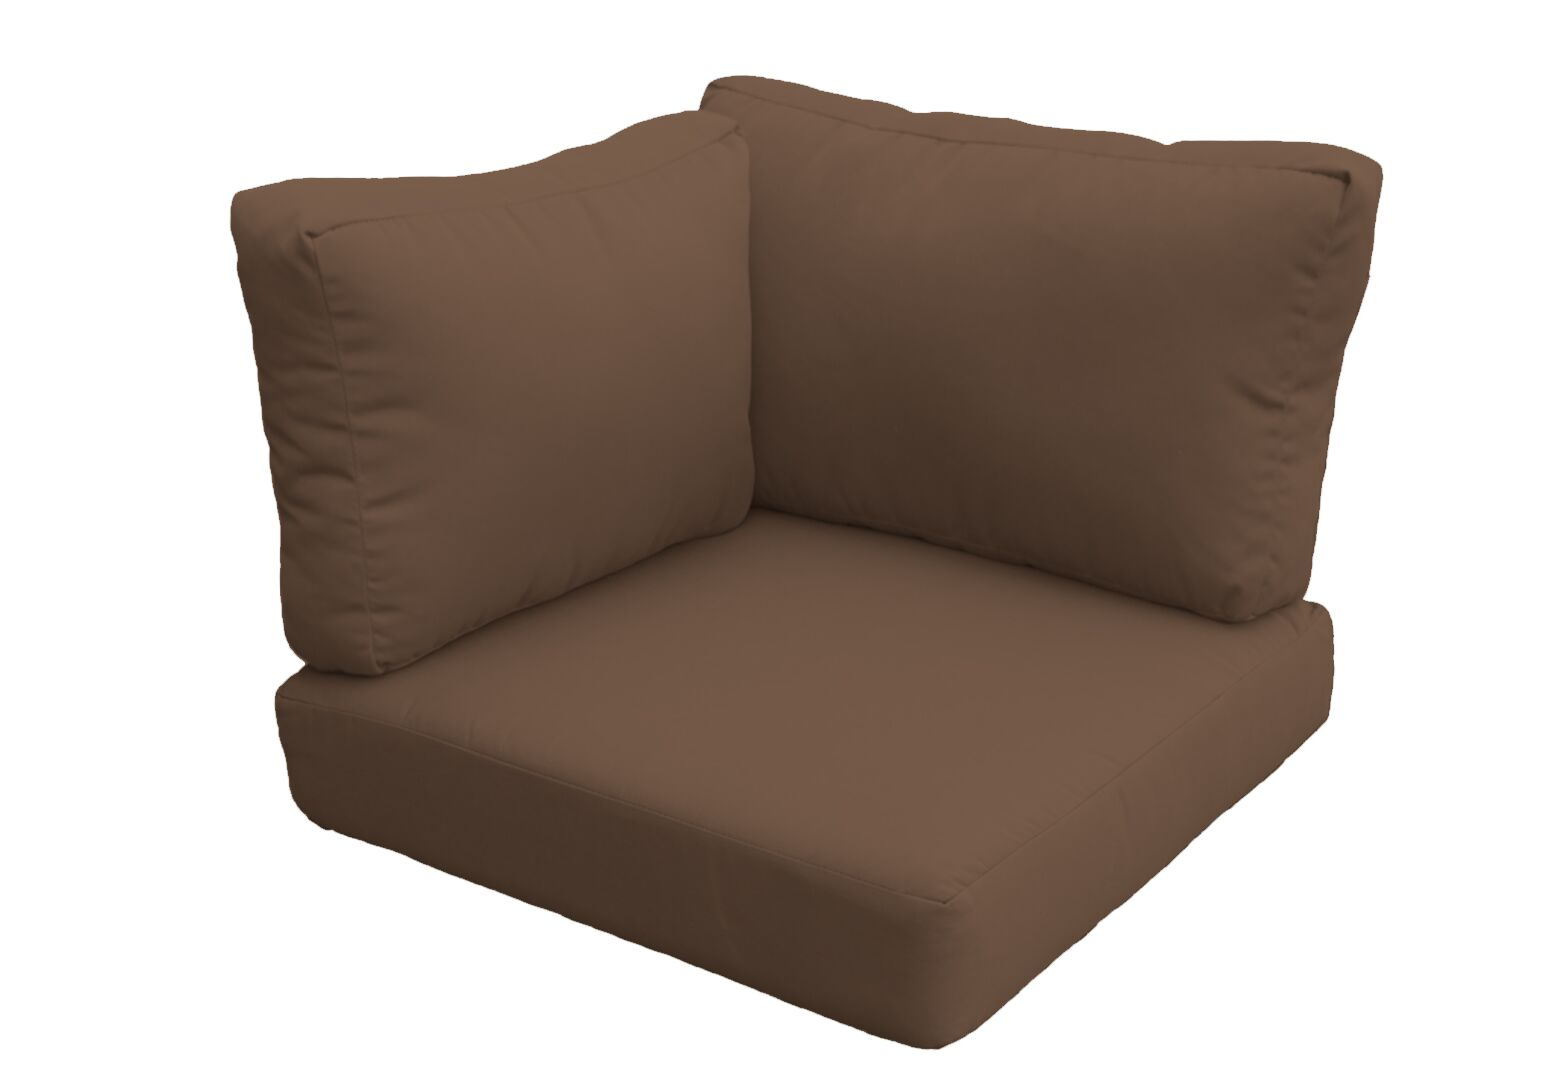 Barbados Outdoor Replacement Cushion Set Fabric: Cocoa